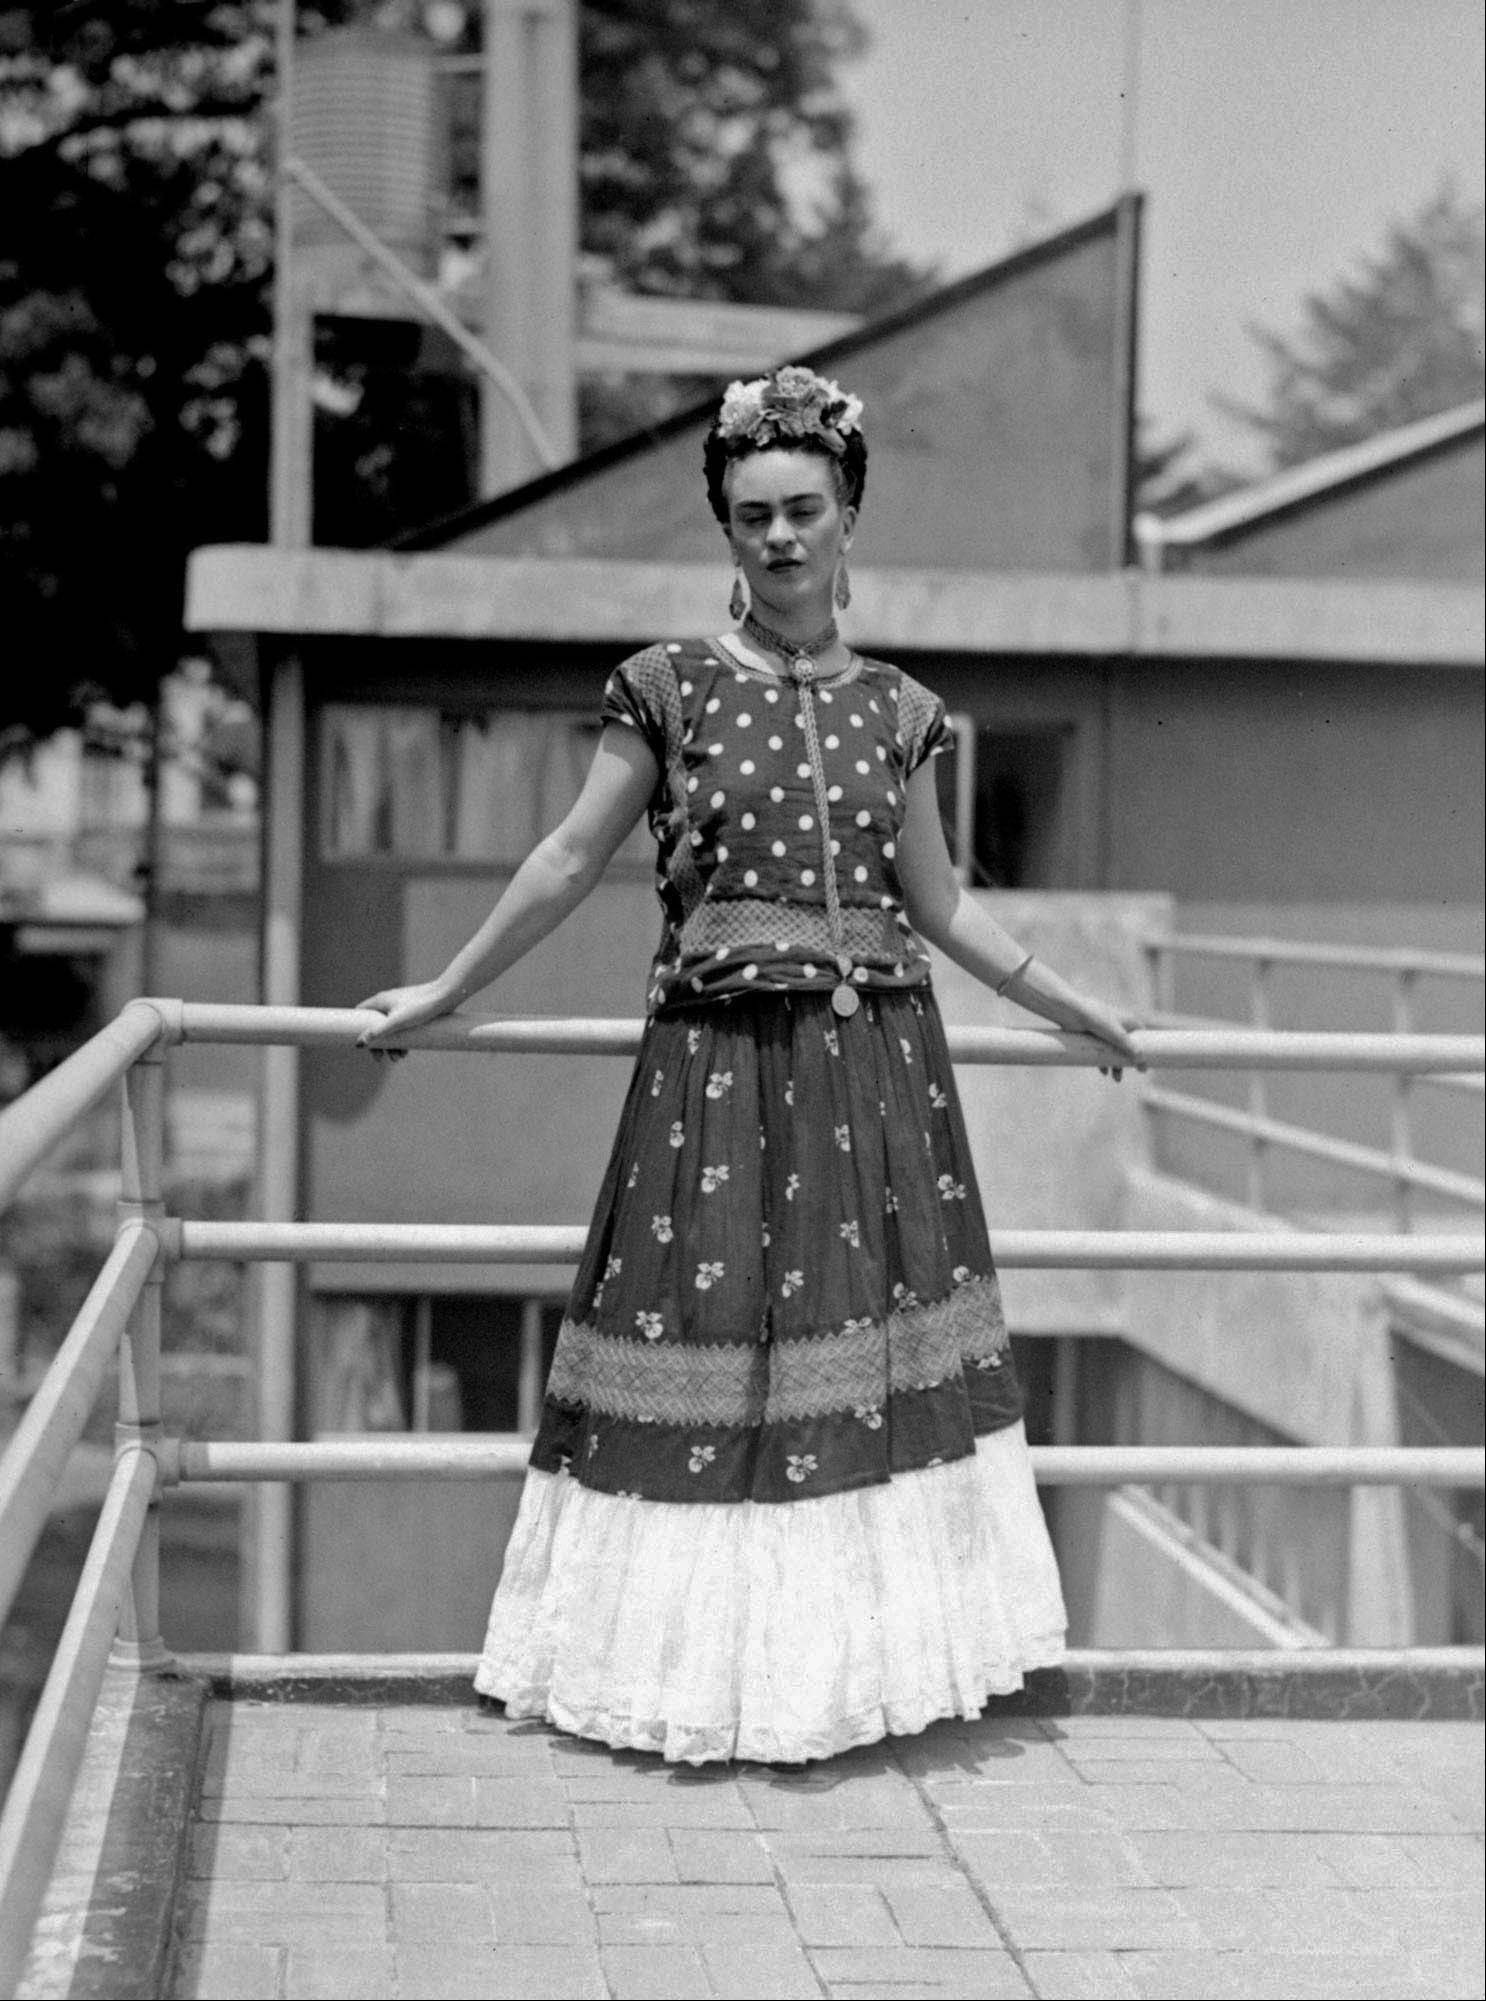 In this April 14, 1939 file photo, painter and surrealist Frida Kahlo, who was the wife of noted Mexican muralist Diego Rivera, poses at her home in Mexico City. A full collection from Kahlo's wardrobe will go on public display Nov. 22 in Mexico City after being locked for nearly 50 years in her armoires and dressers: jewelry, shoes and clothes that still carry the scent of the late artist's perfume and cigarette smoke or stains from painting.